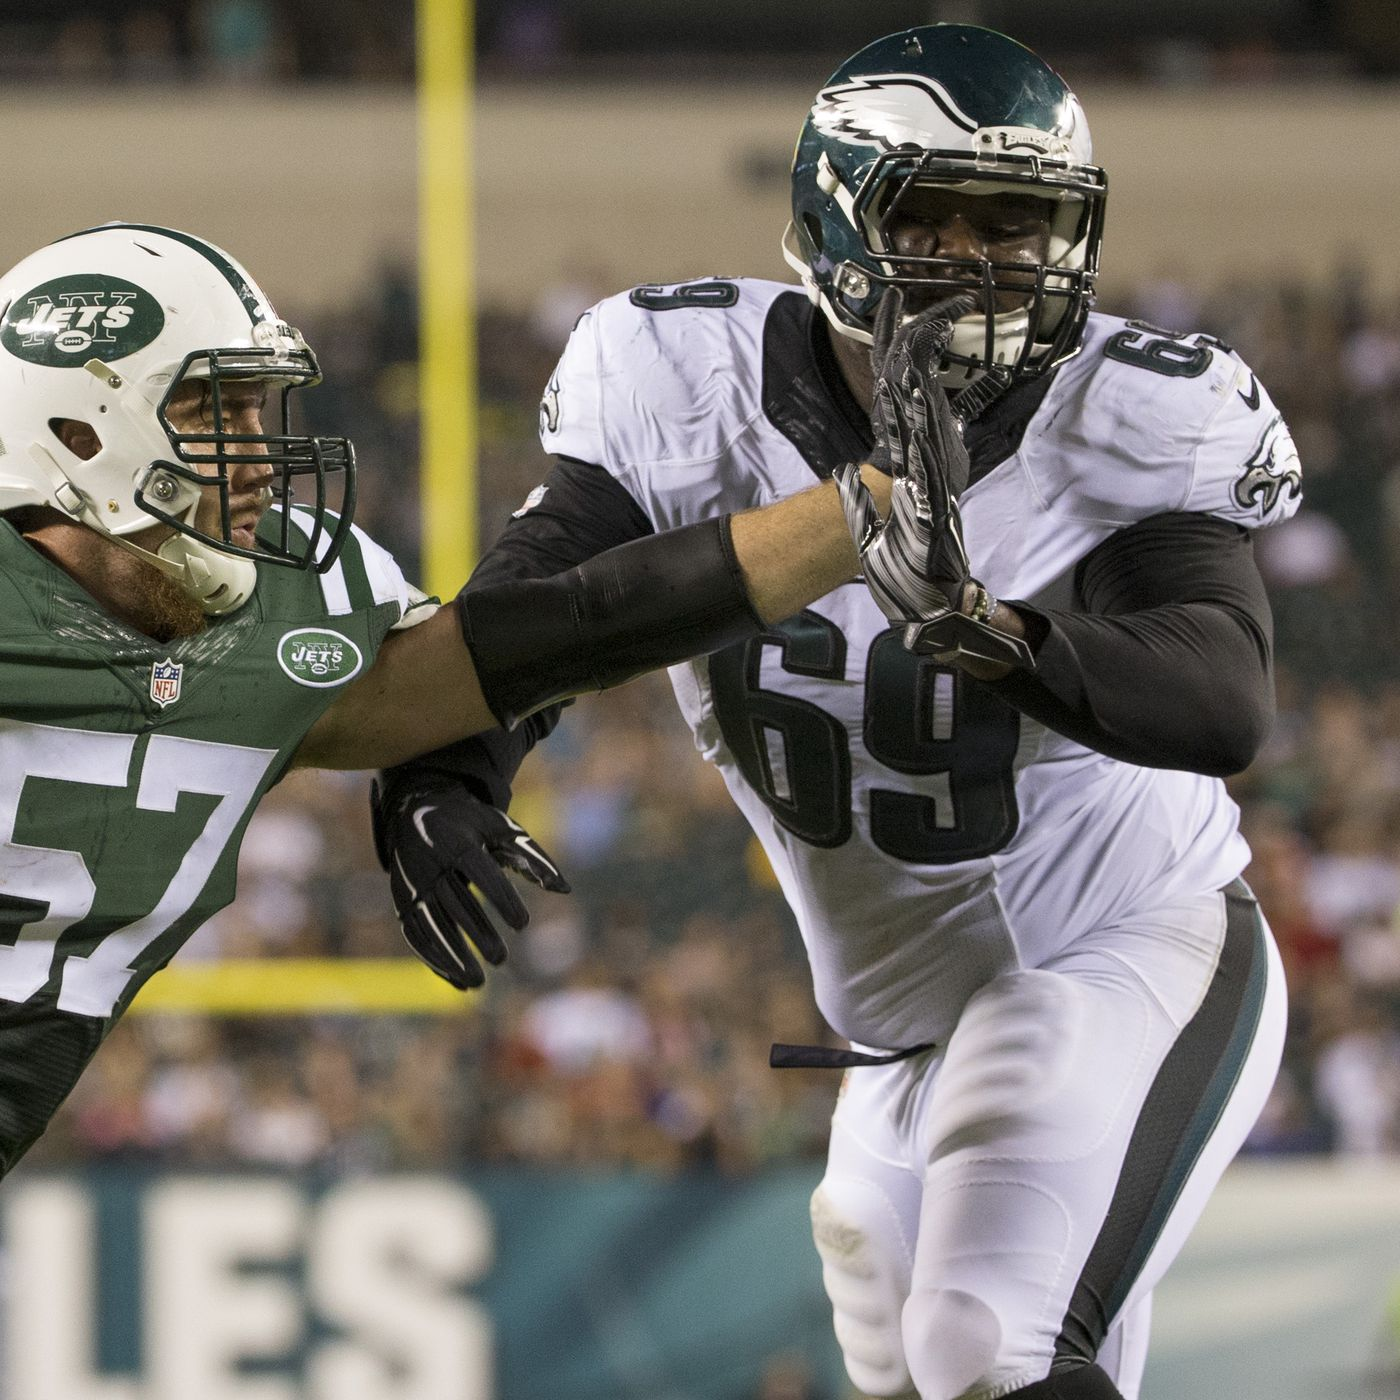 f87e00a580e Eagles News: Doug Pederson is excited about two of Philadelphia's young  offensive linemen